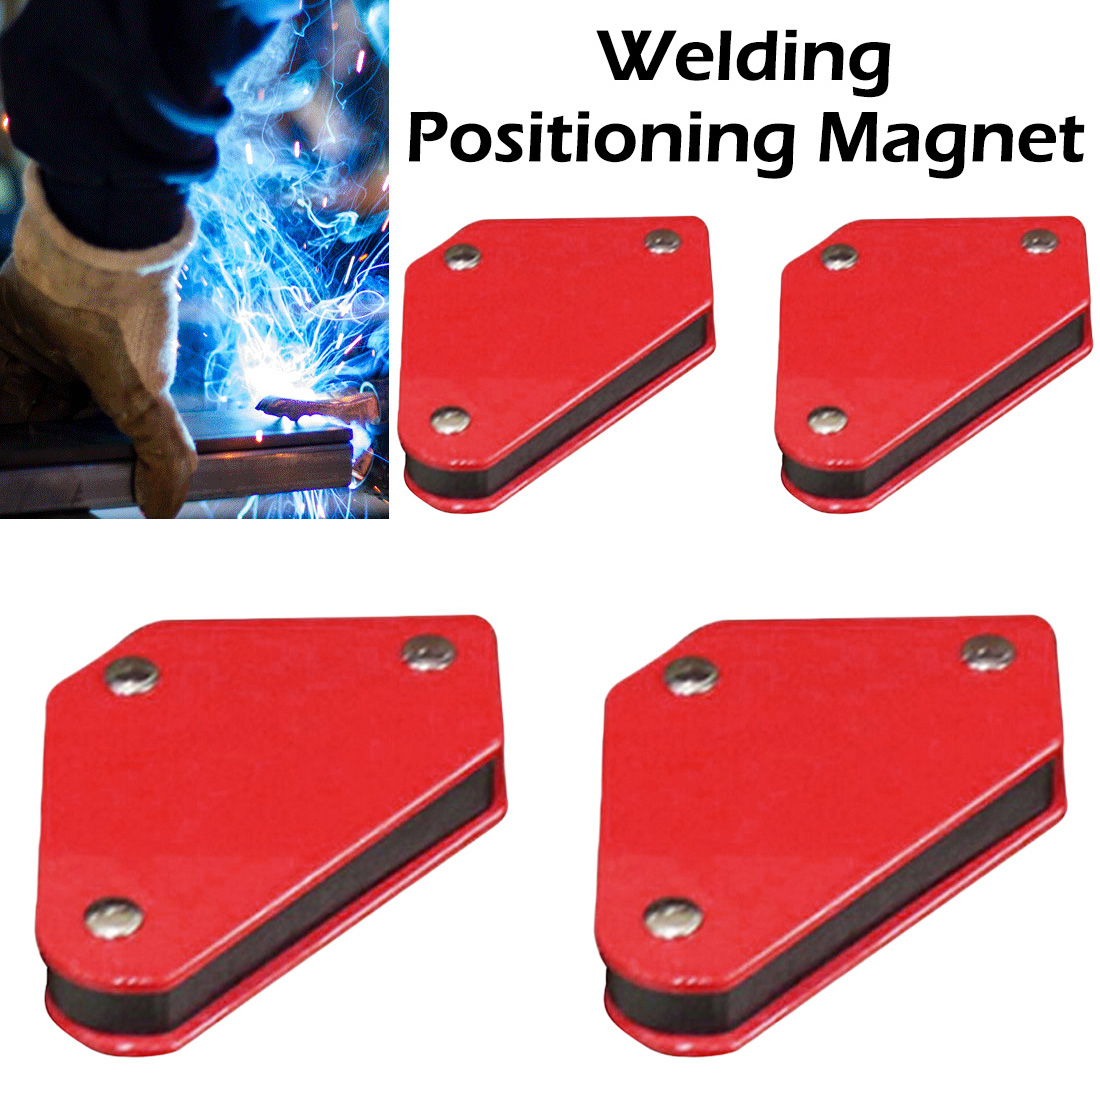 Hot 4pcs  Magnetic Welding Holder Arrow Shape 9Lb Multiple Angles Holds Up To For Soldering Assembly Welding Pipes Installation